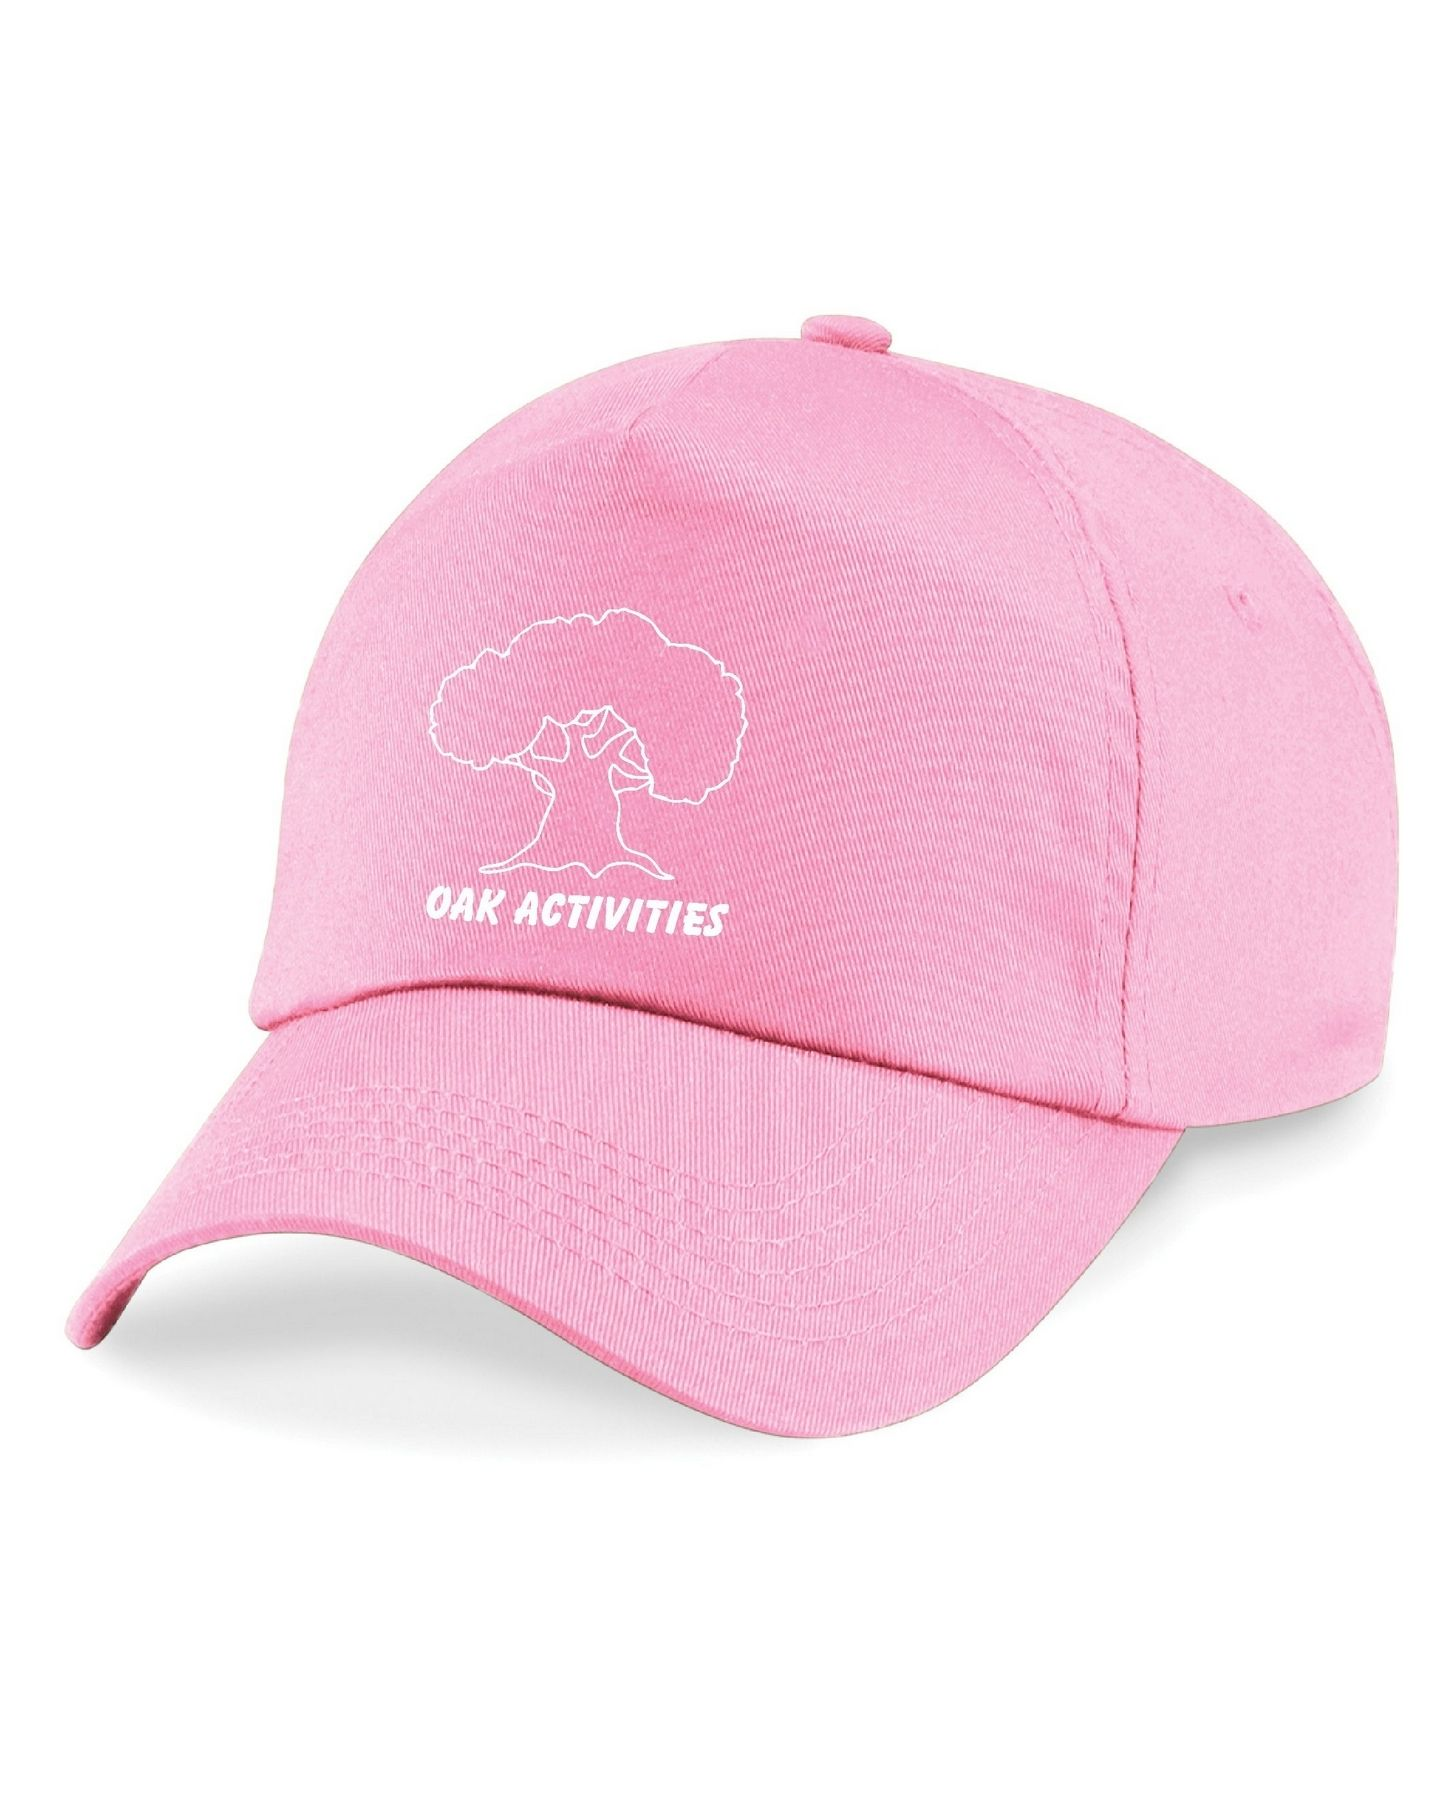 Oak Activities – Junior Cap (Pink)